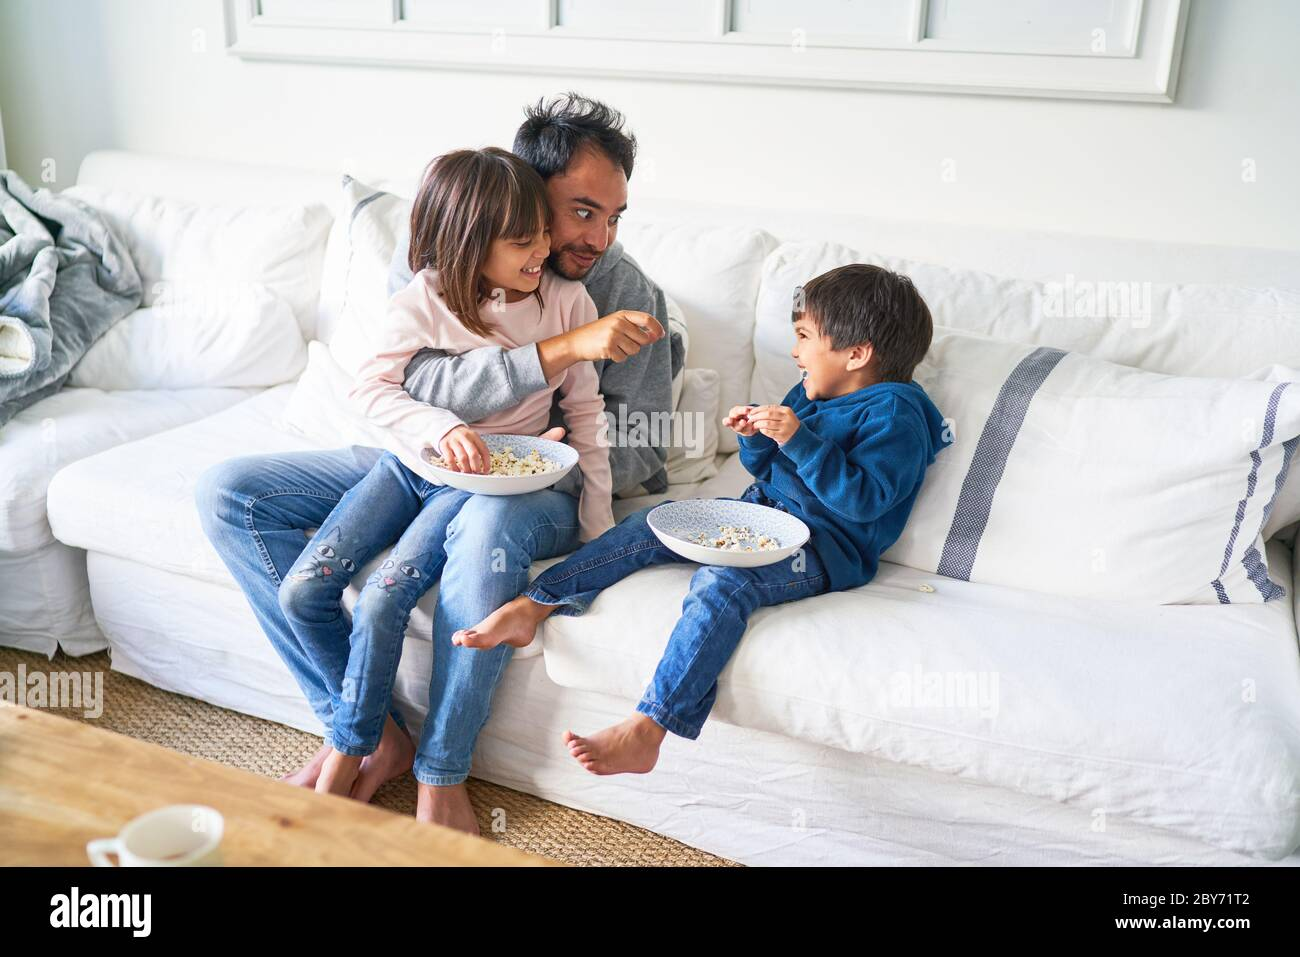 Father and kids eating popcorn on living room sofa Stock Photo